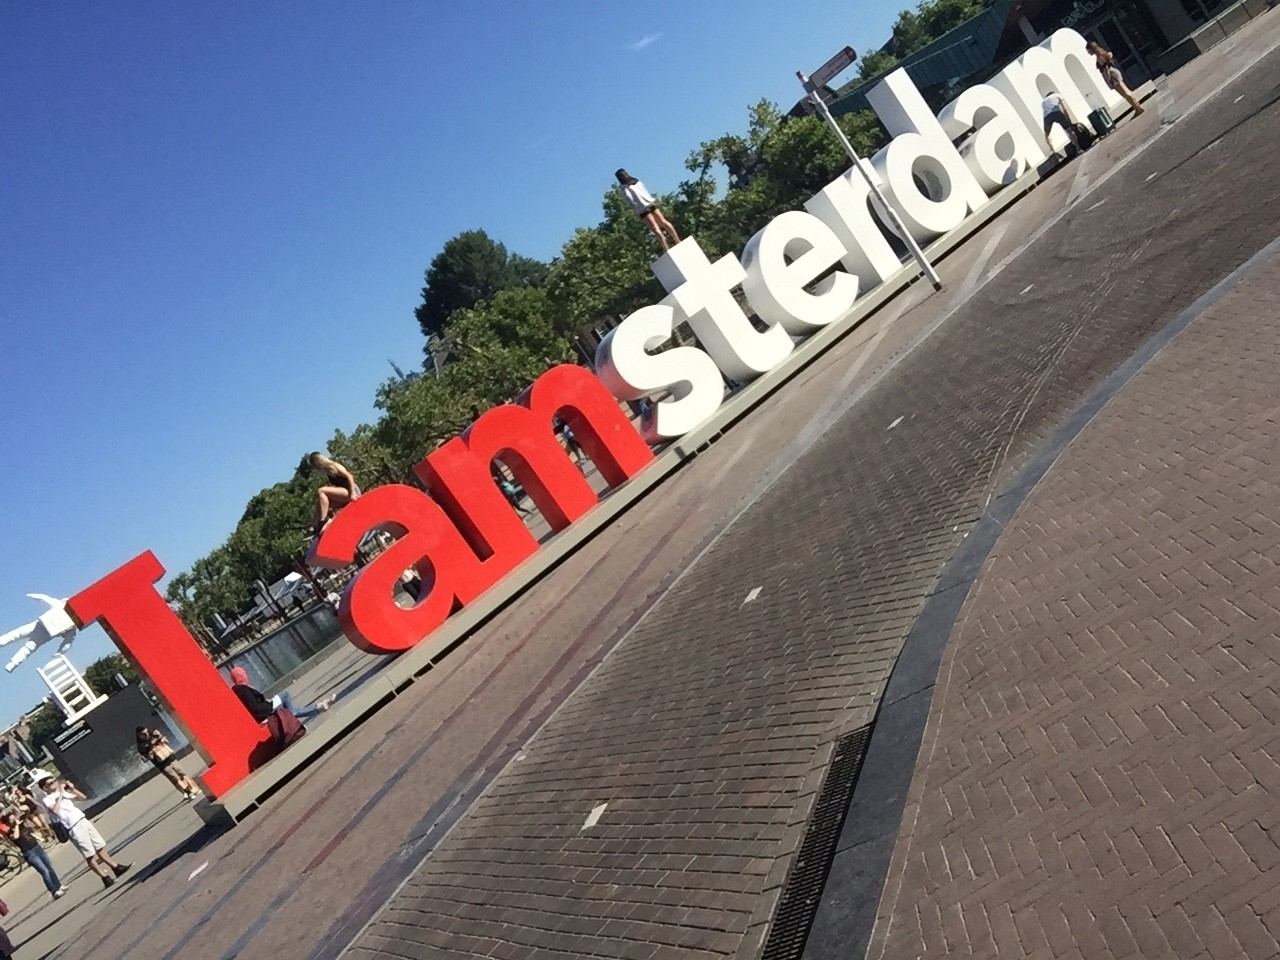 Marco Polo's guide to Amsterdam